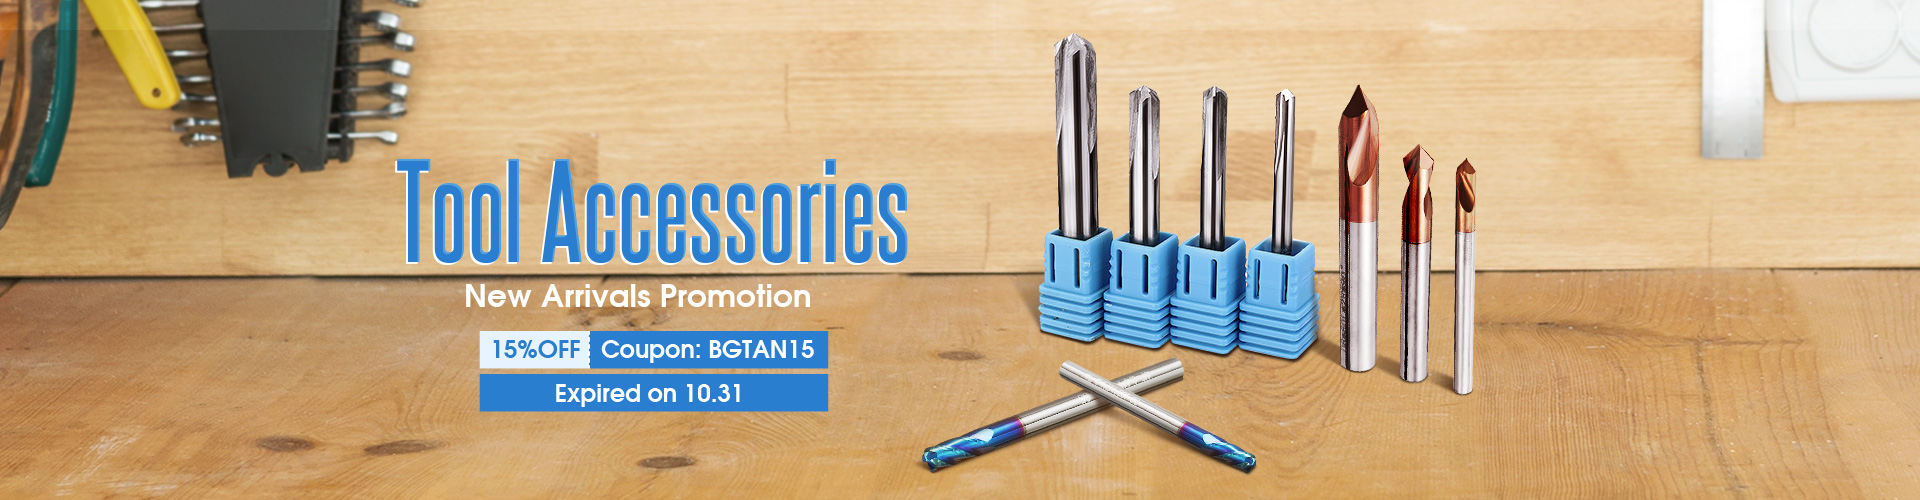 15% OFF for Tool Accessories New Arrivals Promotion